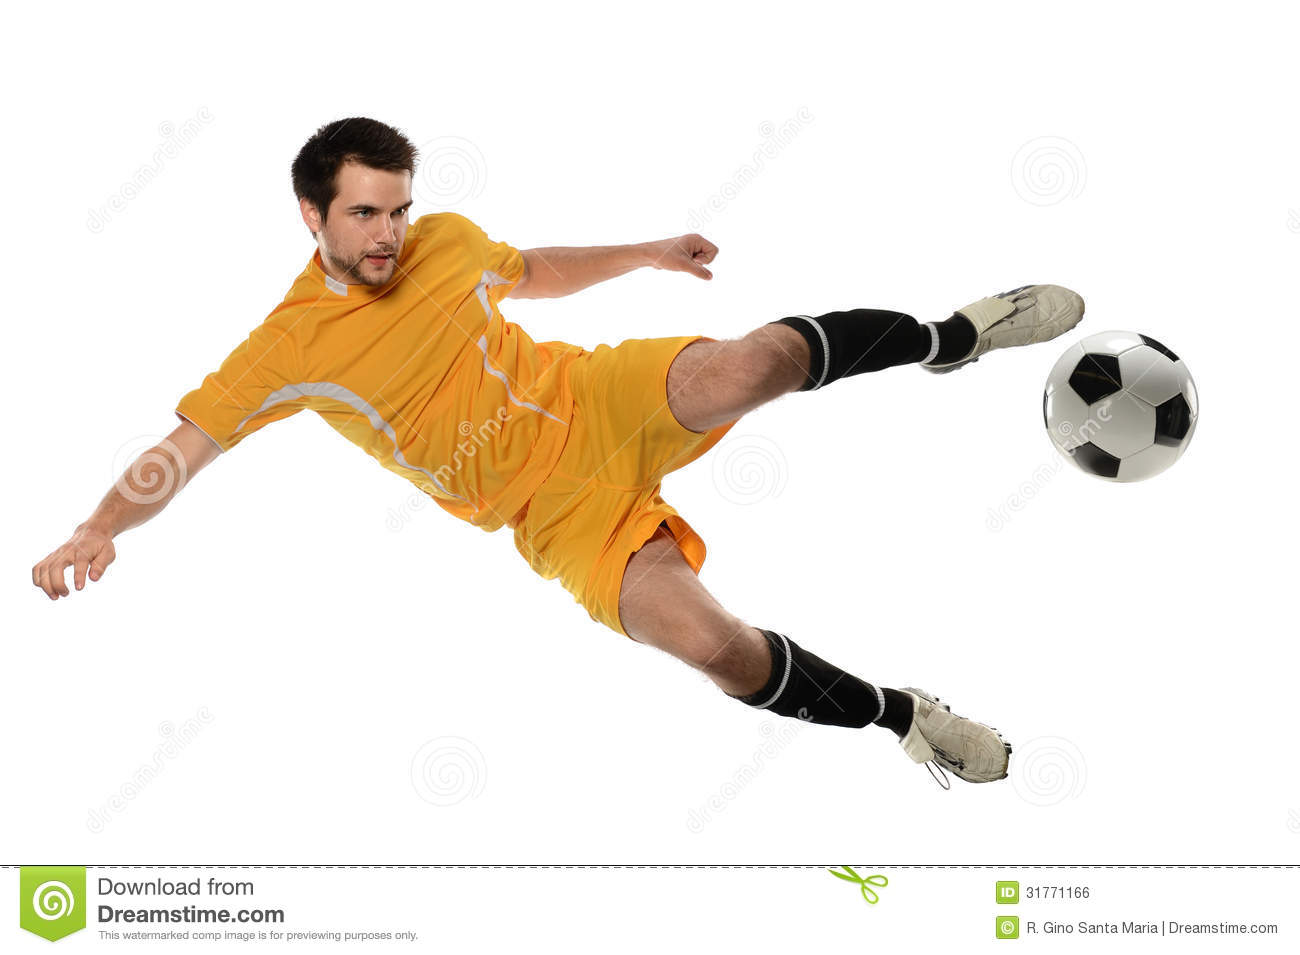 Clipart soccer player no ball png freeuse download Clipart soccer player no ball - ClipartFox png freeuse download